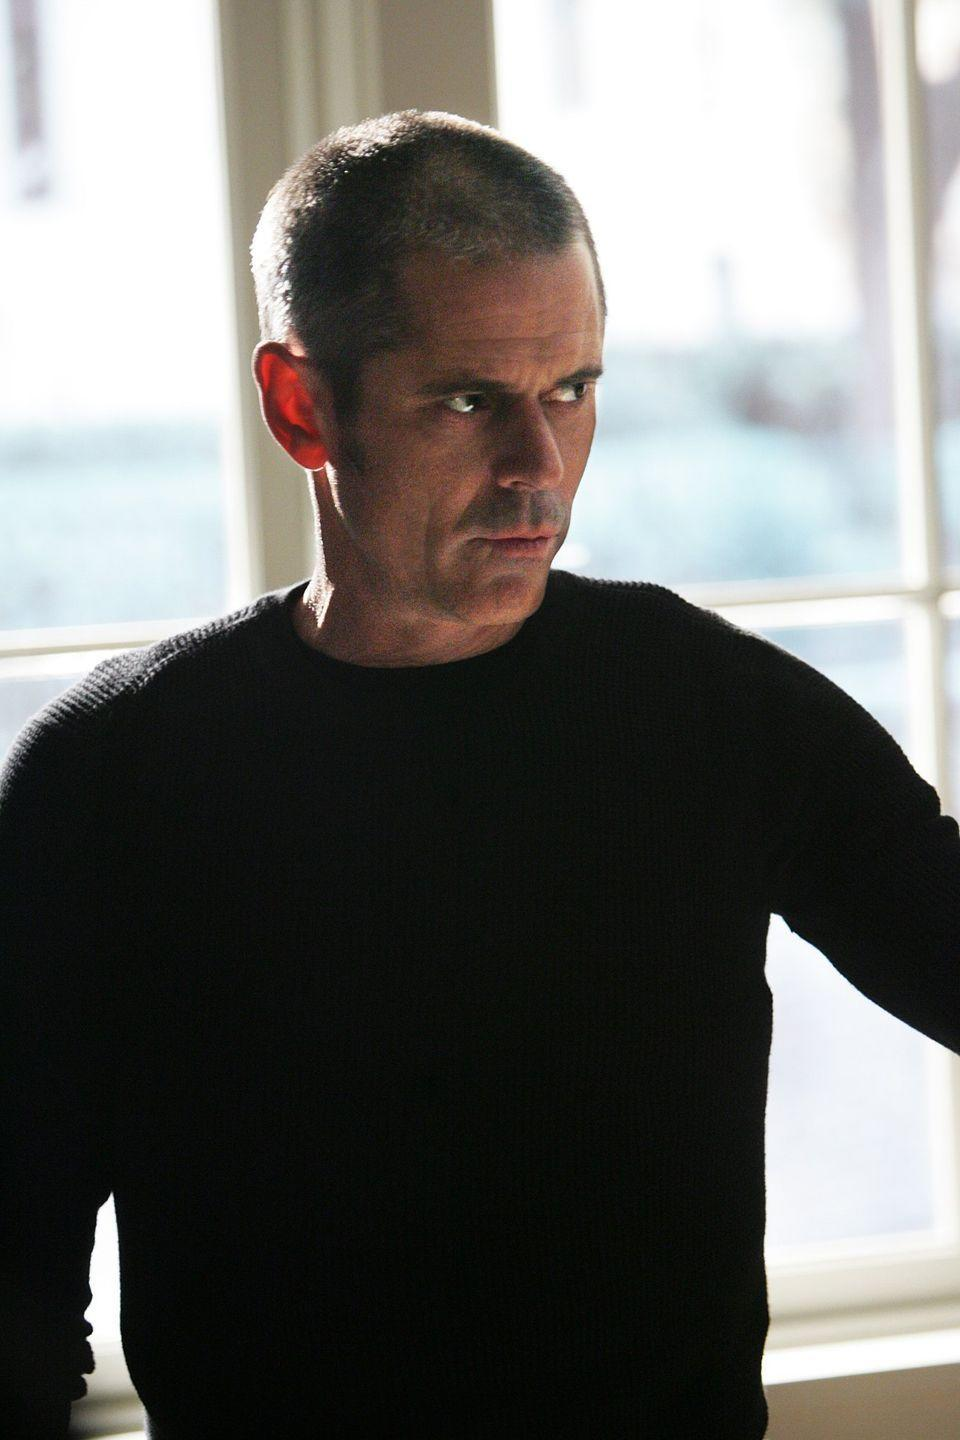 "<p>C Thomas Howell as George Foyet (a.k.a. The Reaper) toys with the BAU in season four before targeted Hotch's ex-wife and son in the season finale and beginning of season five. </p><p>""The Reaper, for me, that's one of the most important roles I've played,"" Thomas told the <a href=""https://film.avclub.com/c-thomas-howell-on-the-outsiders-blackface-and-how-m-1798236526"" rel=""nofollow noopener"" target=""_blank"" data-ylk=""slk:AV Club"" class=""link rapid-noclick-resp"">AV Club</a>. ""I hadn't played many bad guys, and I certainly hadn't played any bad guys <em>successfully</em> up until that point, but it was really an opportunity for me to discover what that note really meant. When I played the Reaper, I was really clear that I wasn't going to be playing a bad guy. And when you watch the performance in that show, I'm playing someone who's a good guy who's doing really bad things.""</p>"